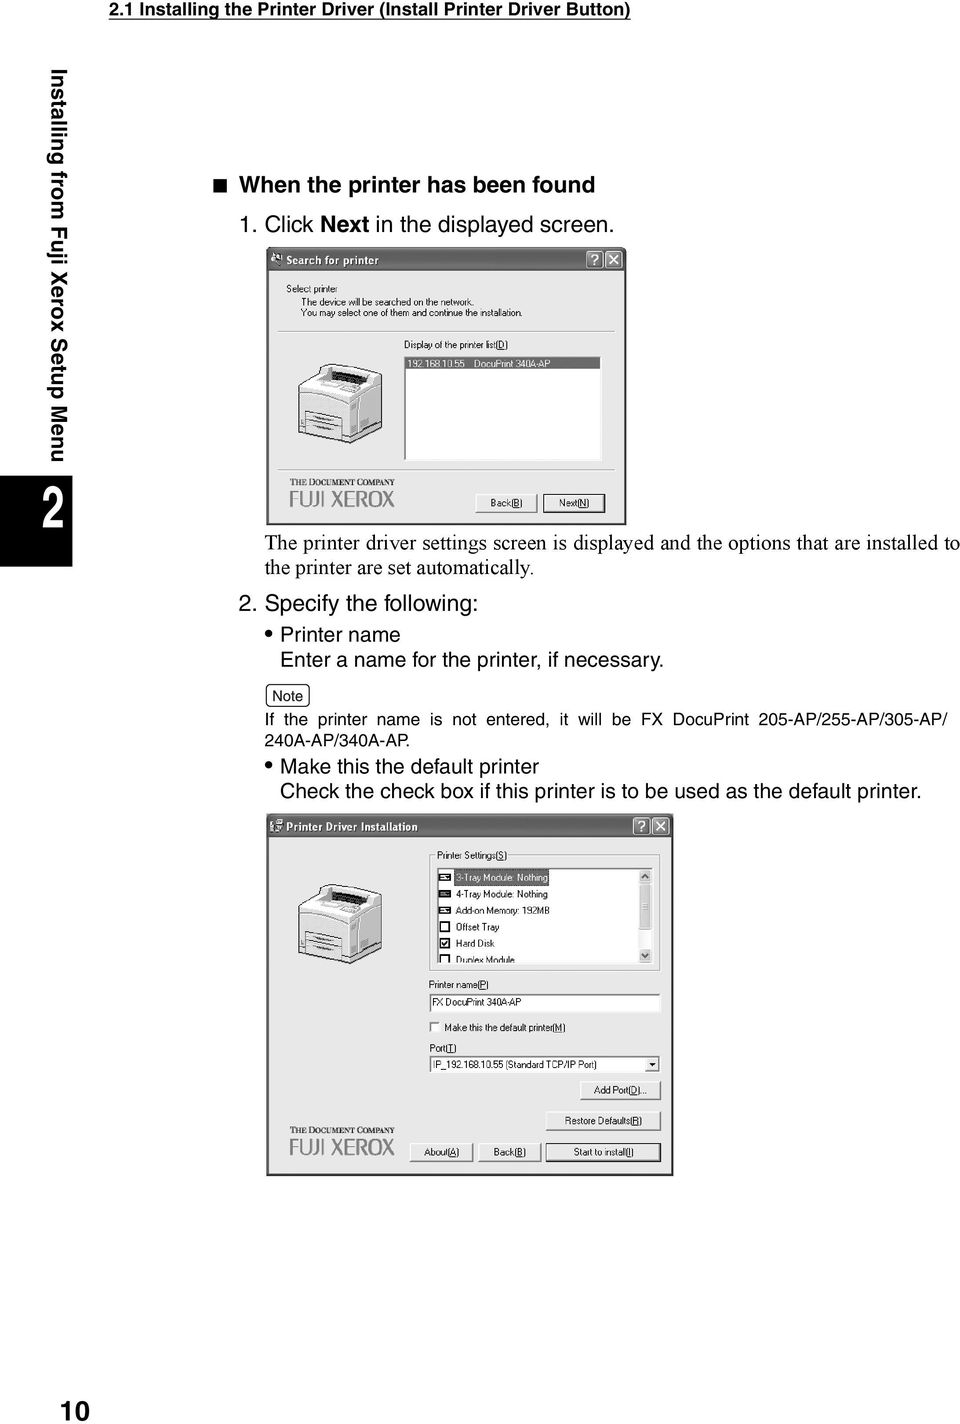 The printer driver settings screen is displayed and the options that are installed to the printer are set automatically. 2.